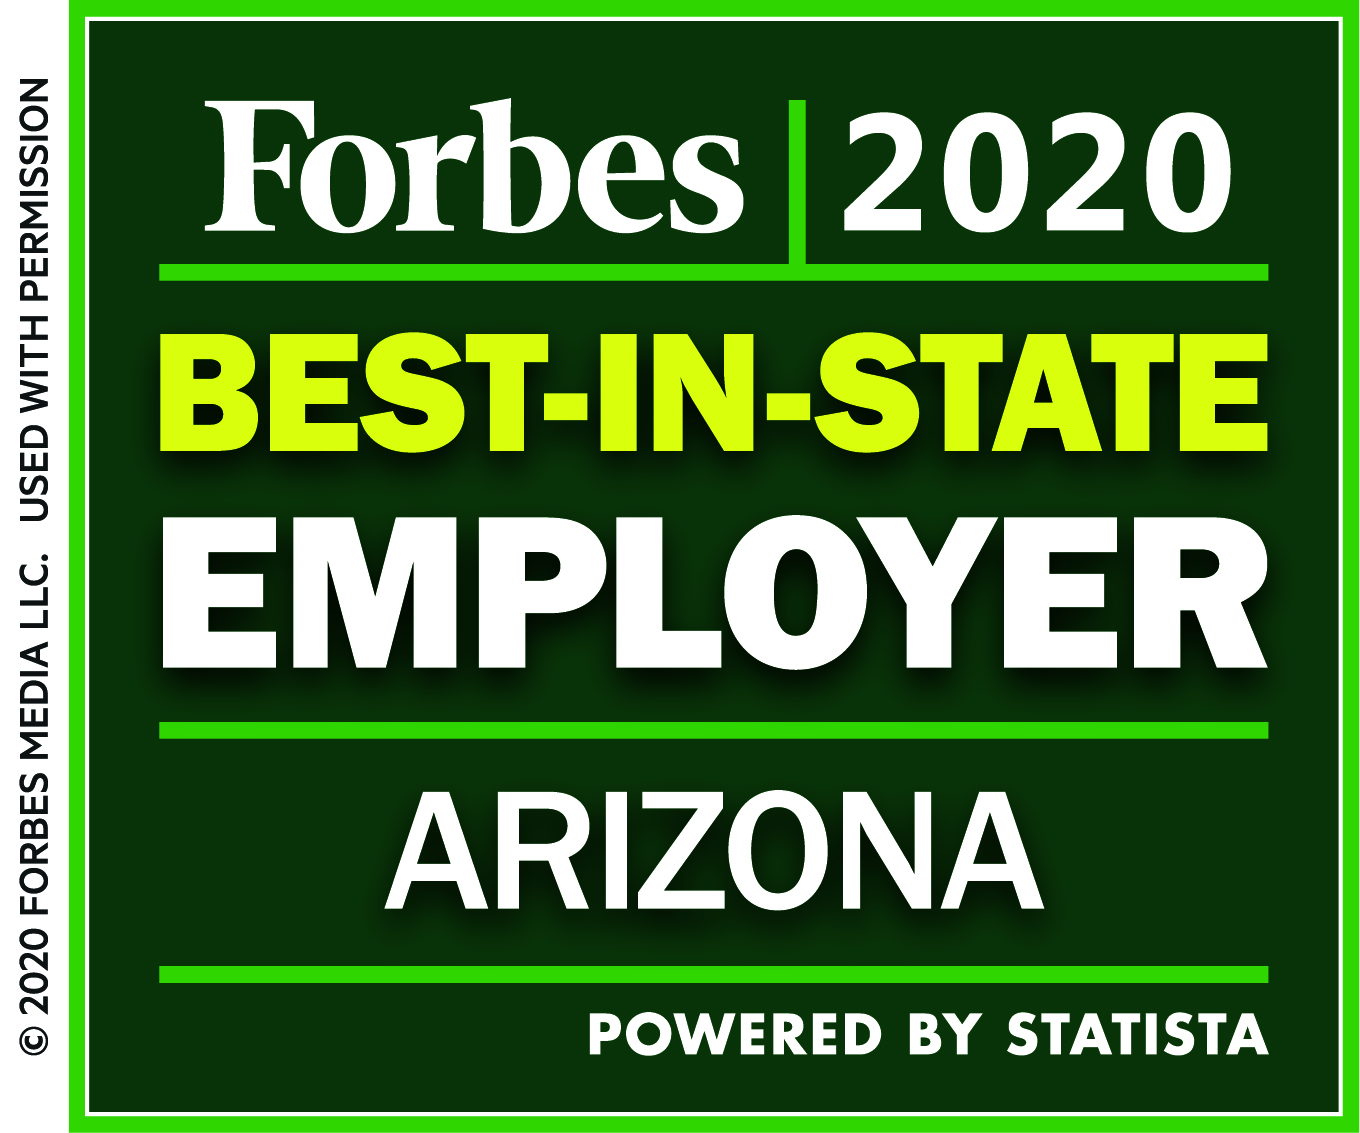 Best in state employee 2020